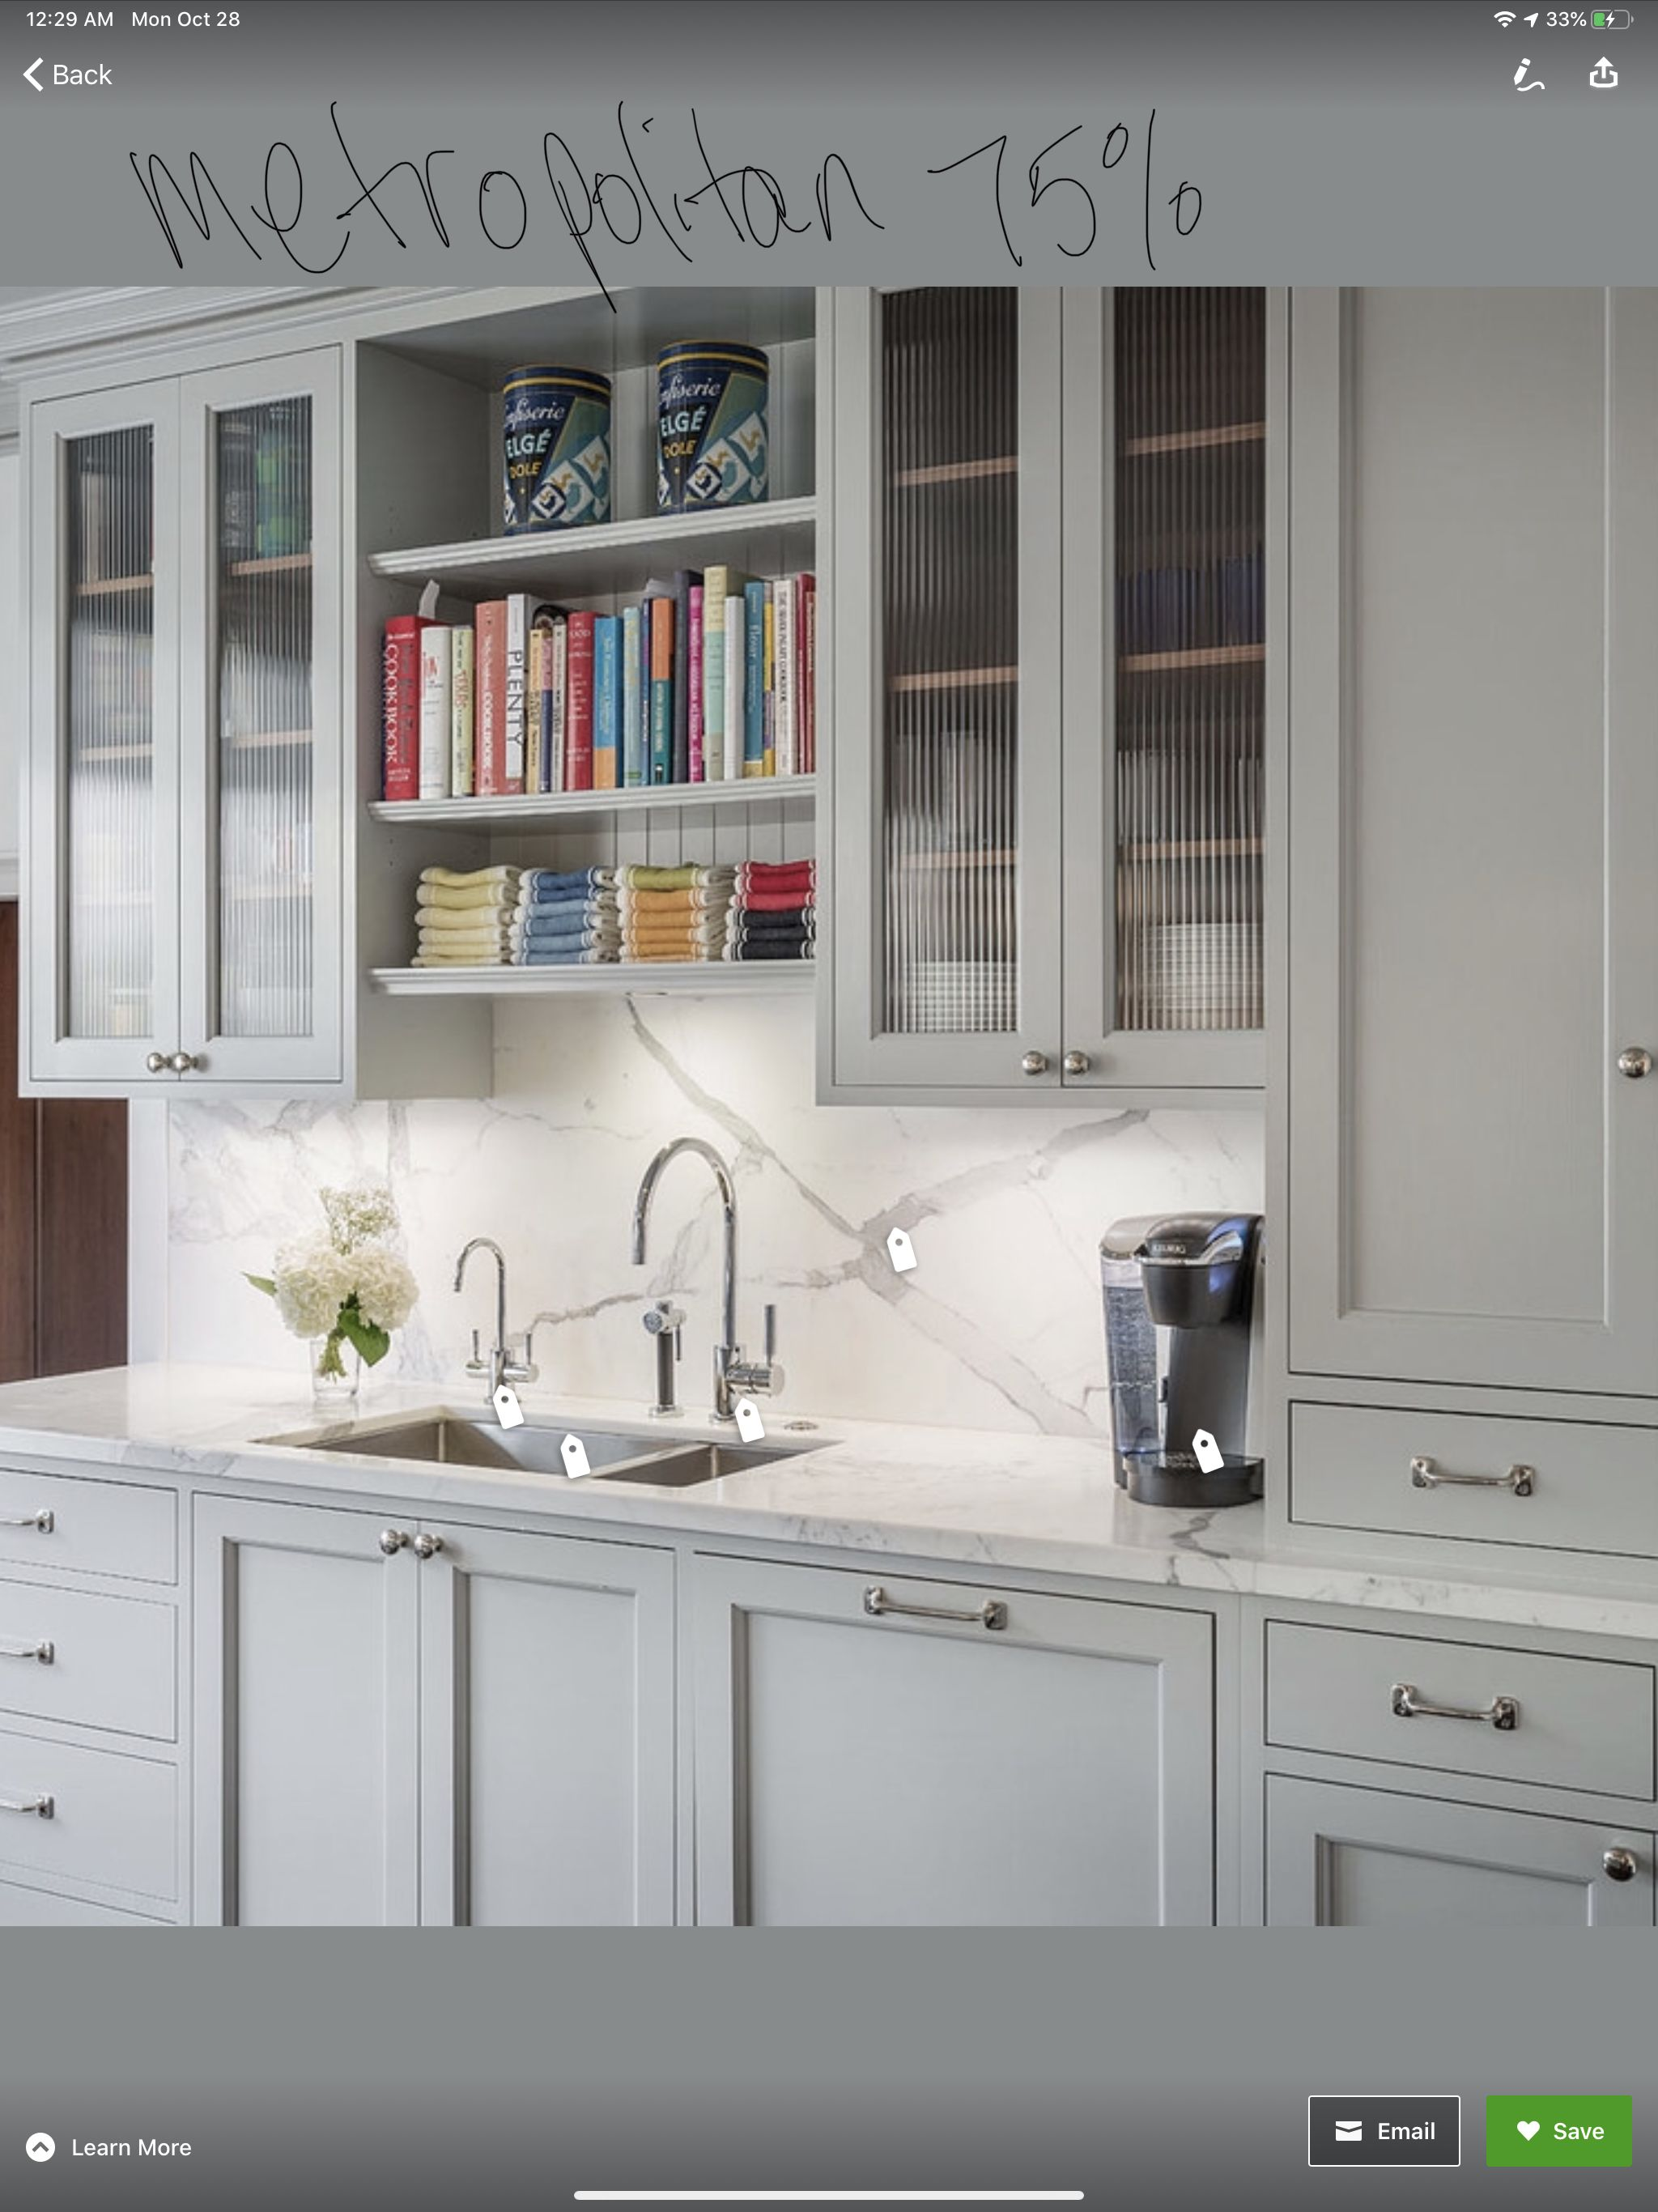 Give Us Your Insight Do You Like This Kitchen That S Mostly White Refrigerator Sale White Fridges